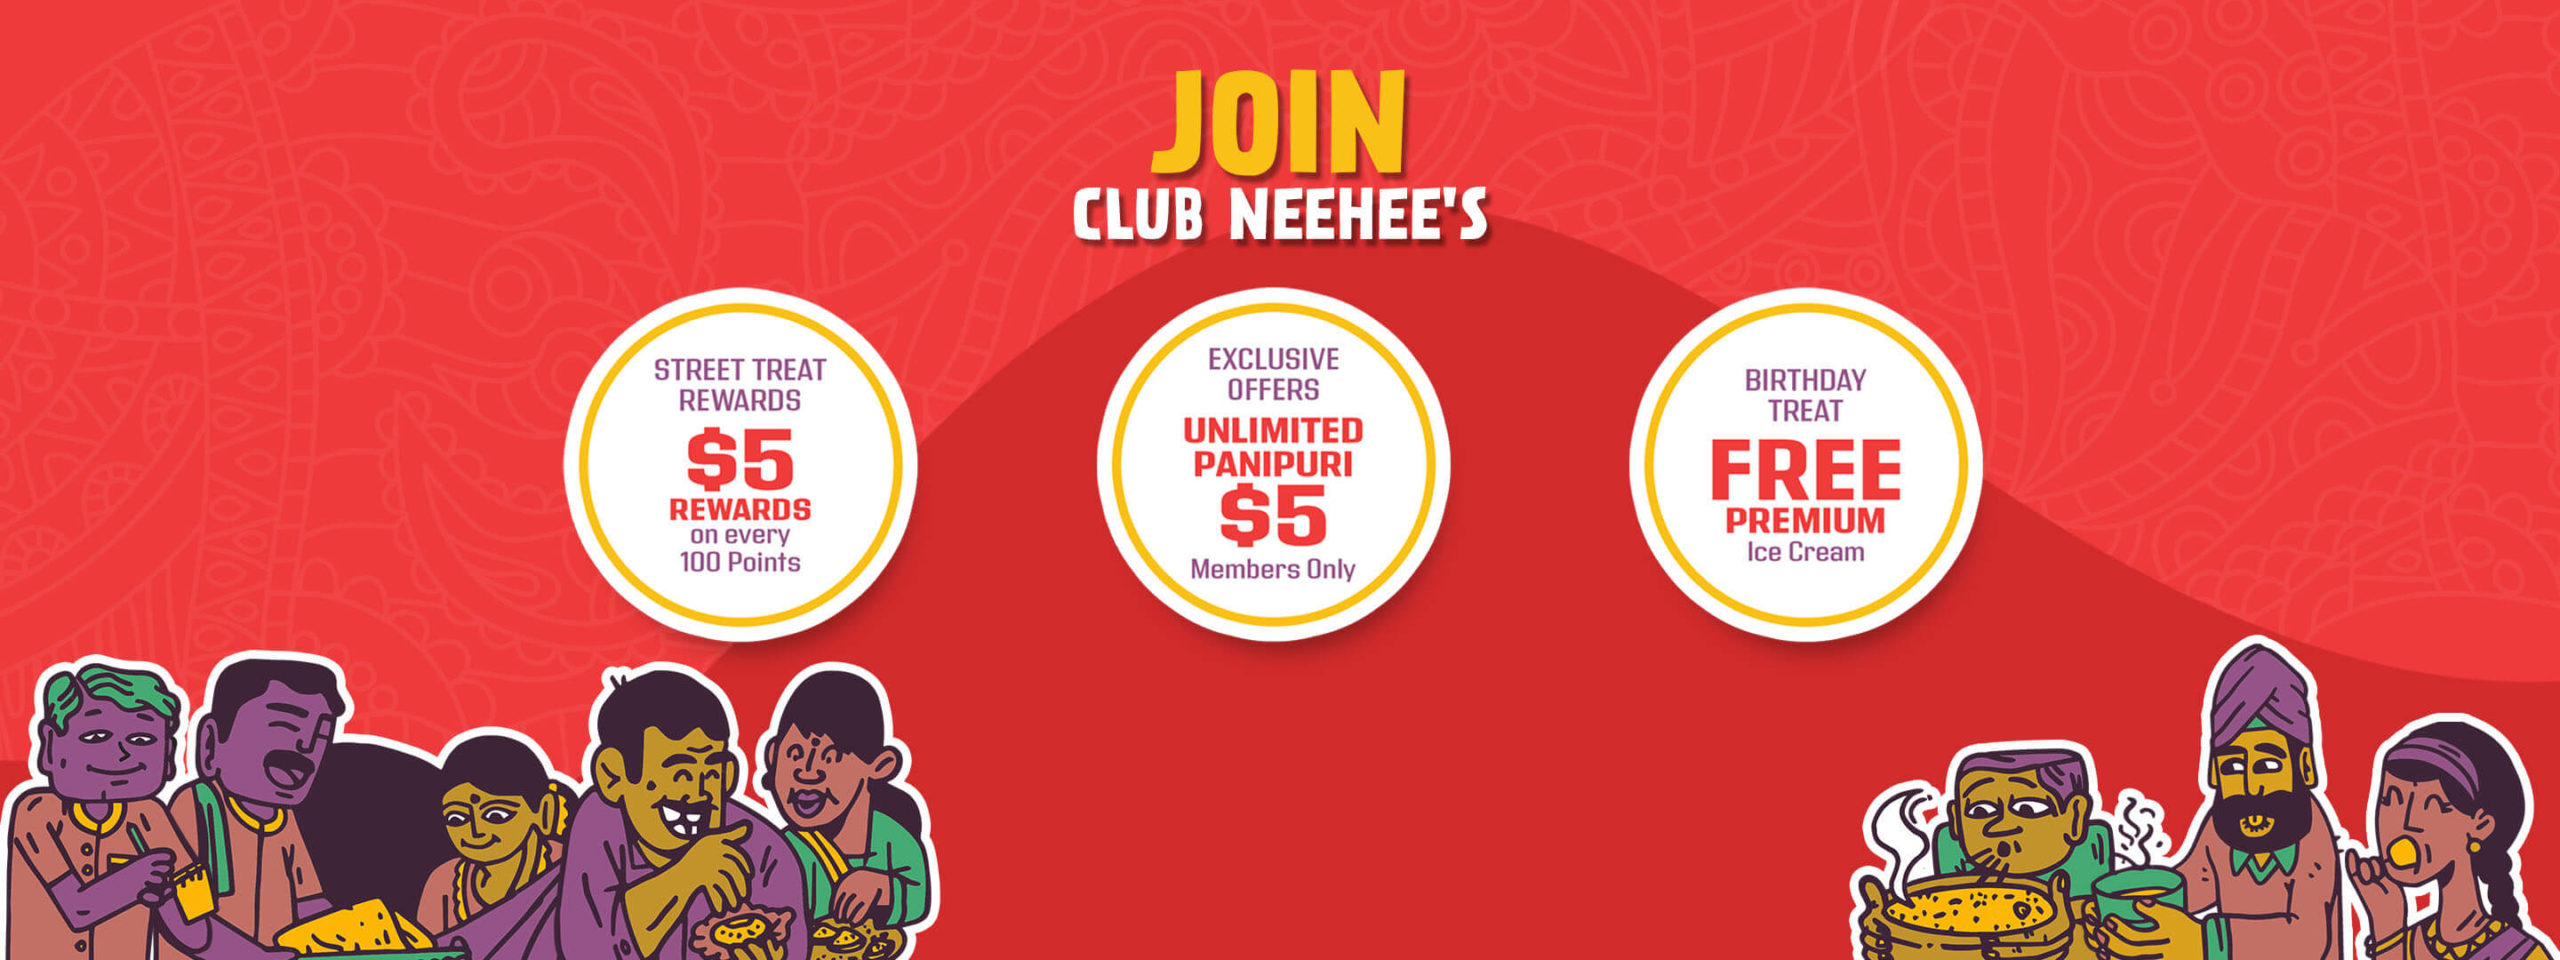 To get exclusive offers at Neehee's, Join Club Neehee's.